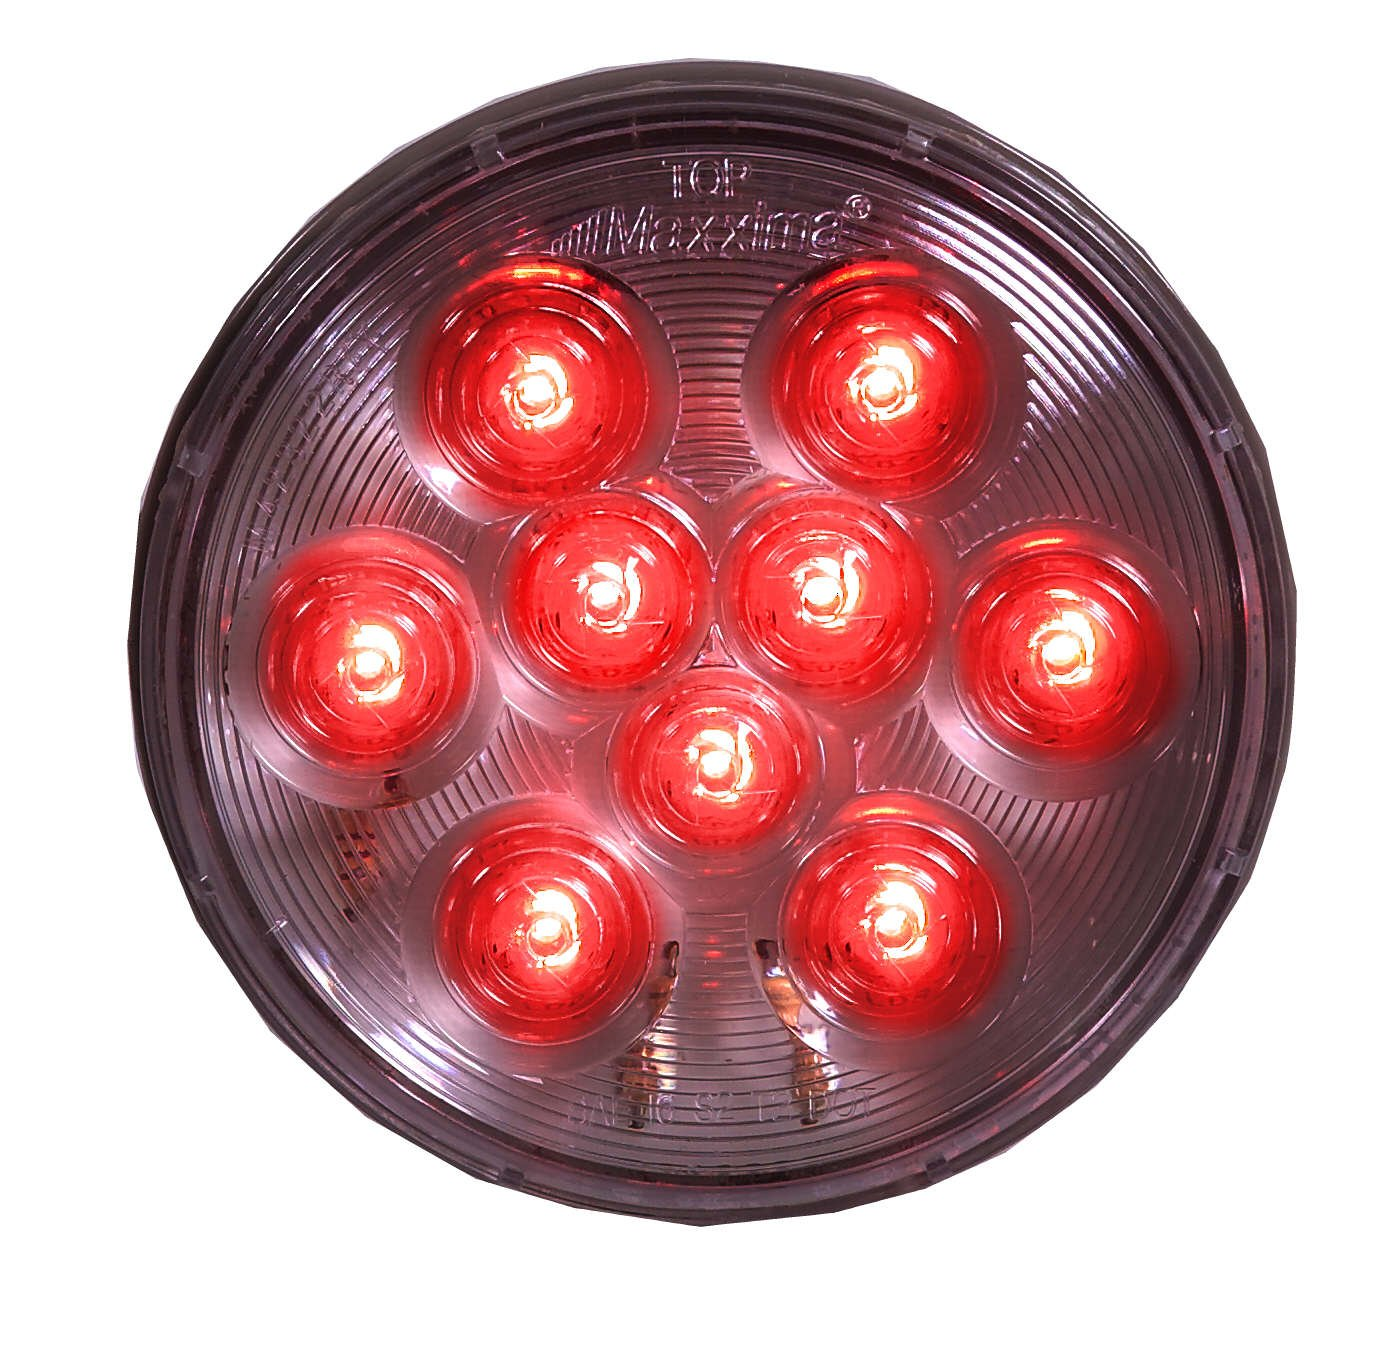 Maxxima M42322RCL Red 4'' Round Stop/Tail/Turn Light with Clear Lens by Maxxima